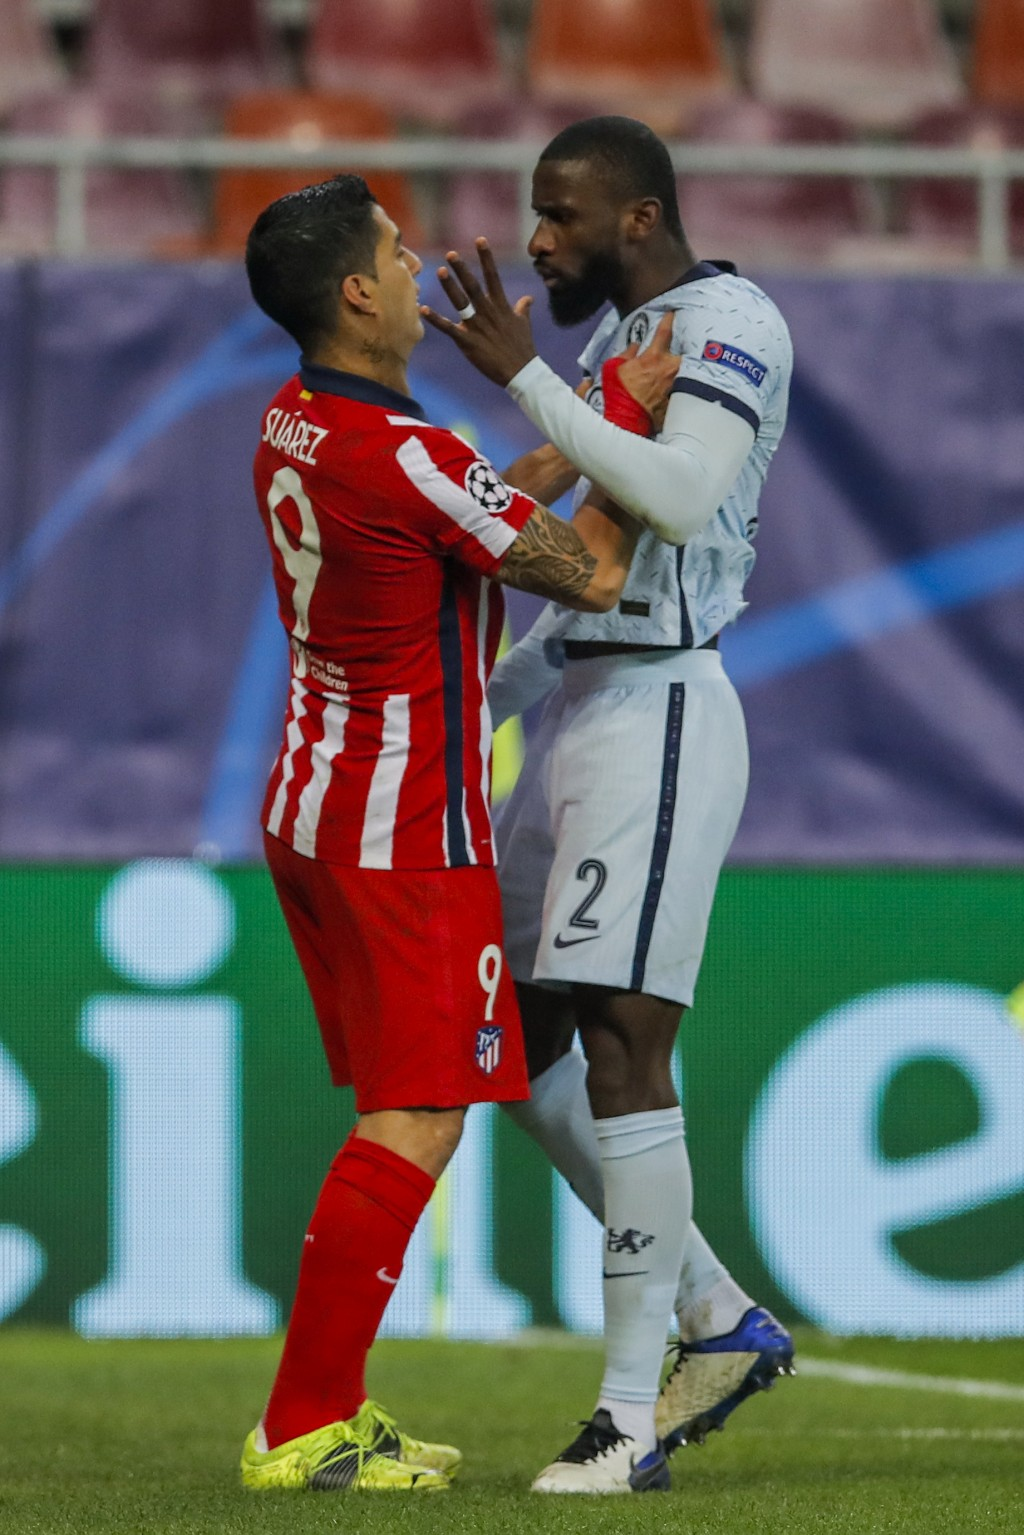 Atletico Madrid's Luis Suarez, left, argues with Chelsea's Antonio Rudiger during the Champions League, round of 16, first leg soccer match between At...